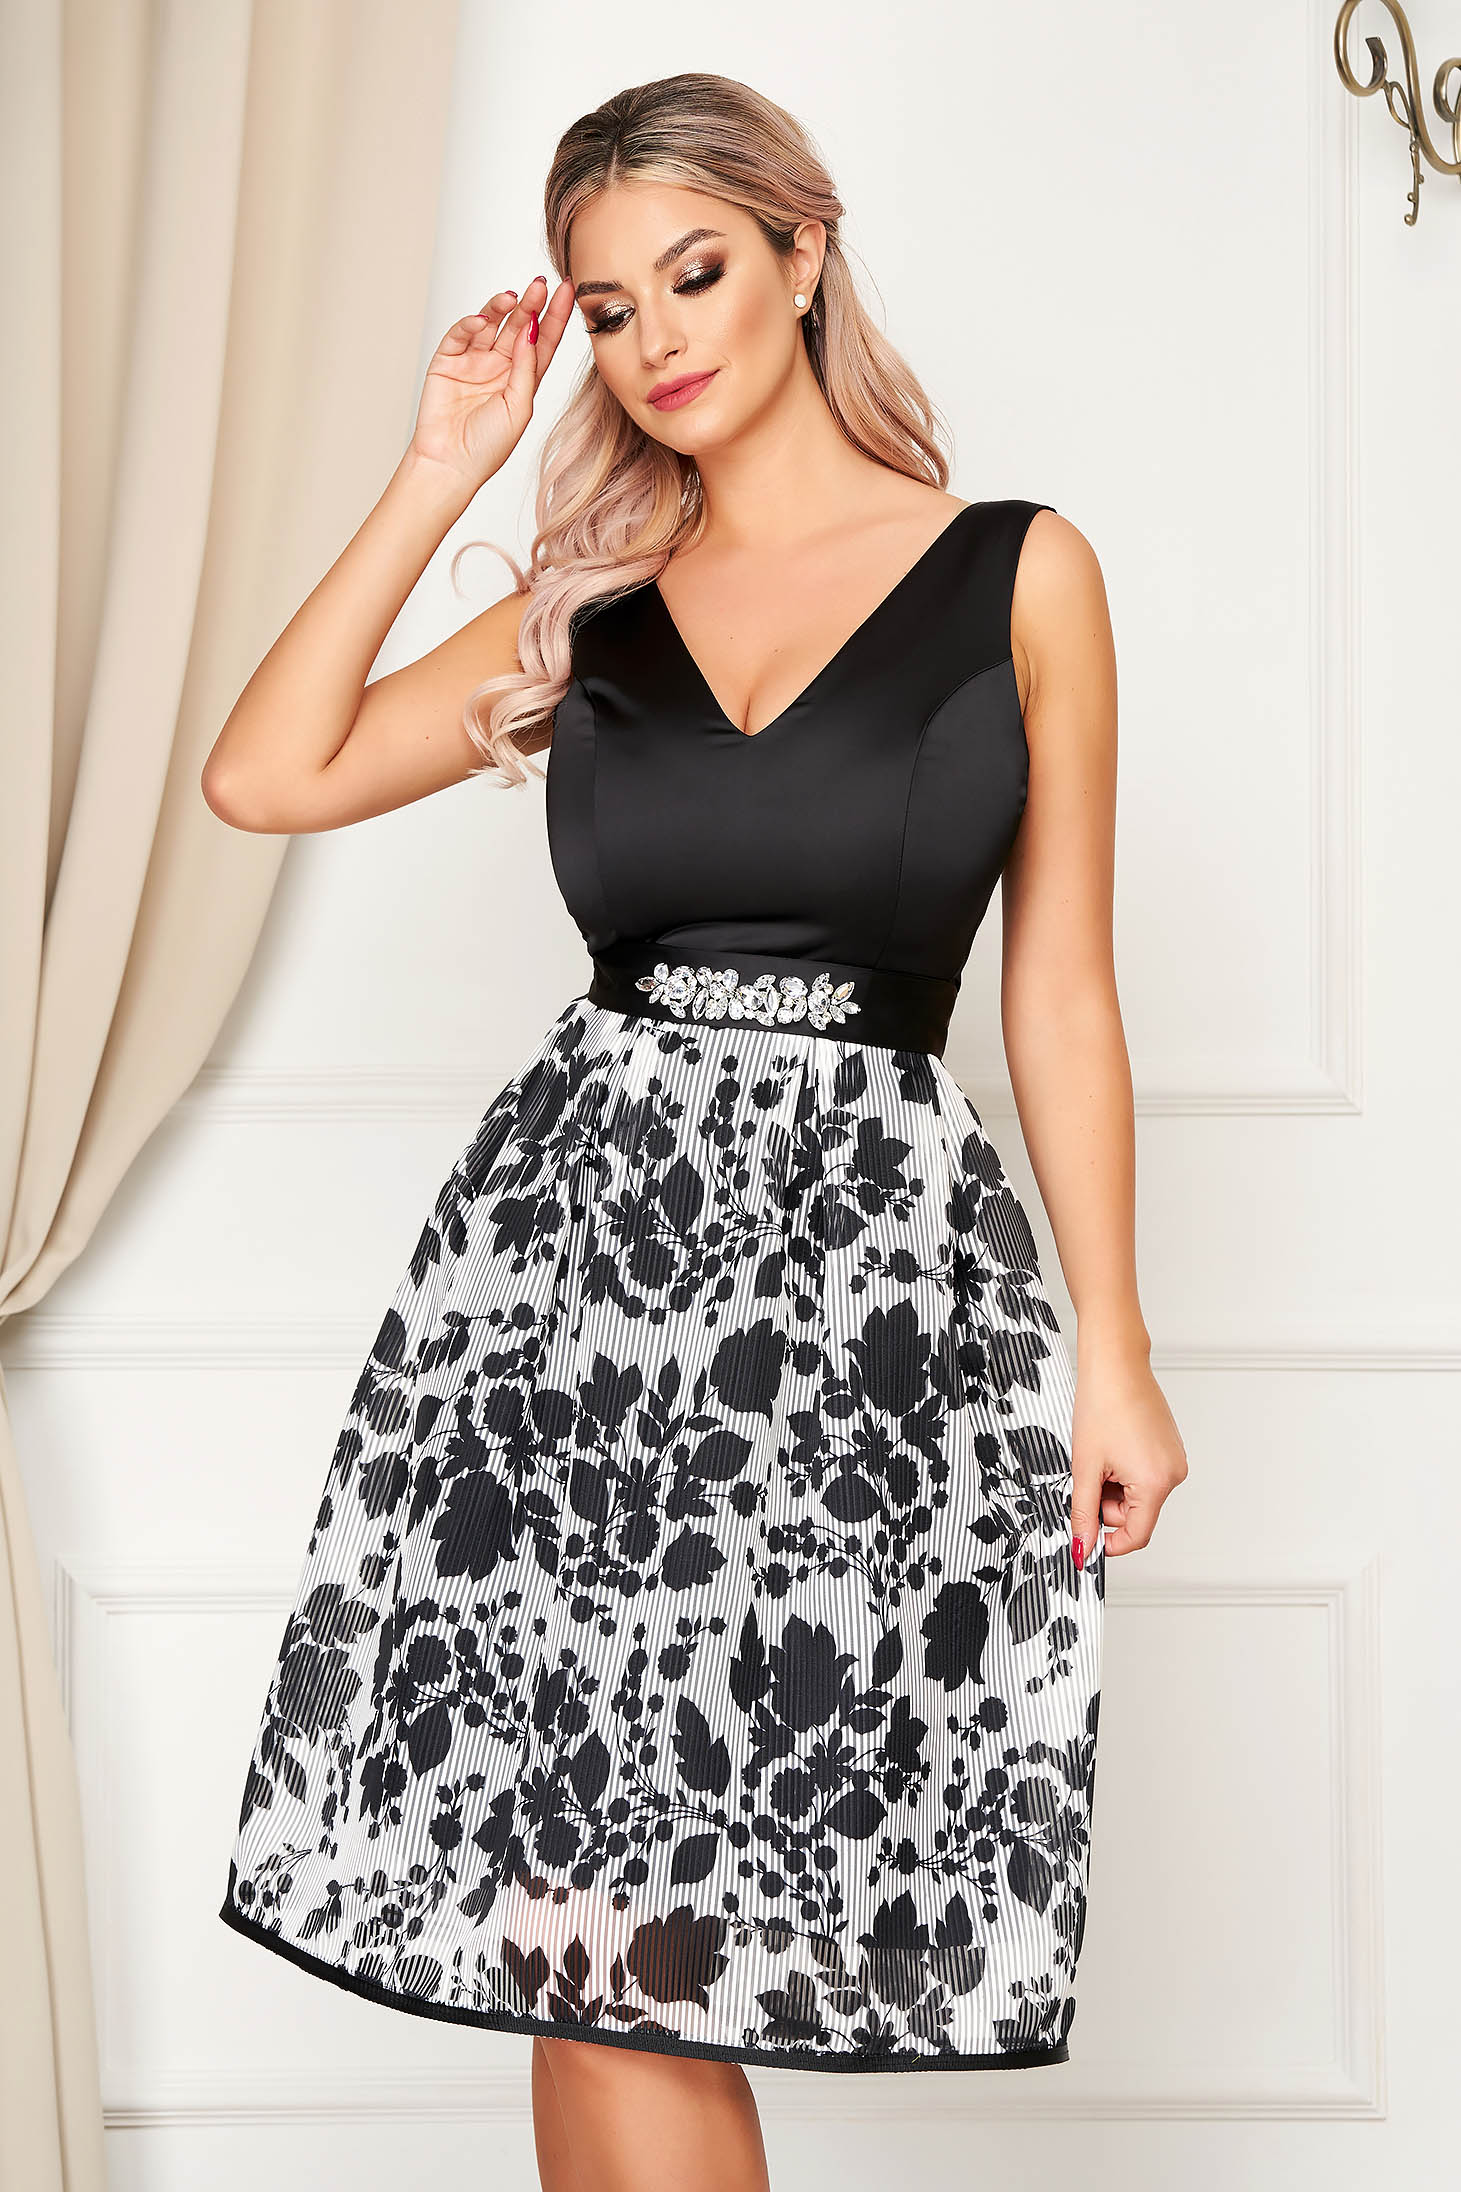 Dress StarShinerS black occasional cloche with v-neckline accessorized with tied waistband